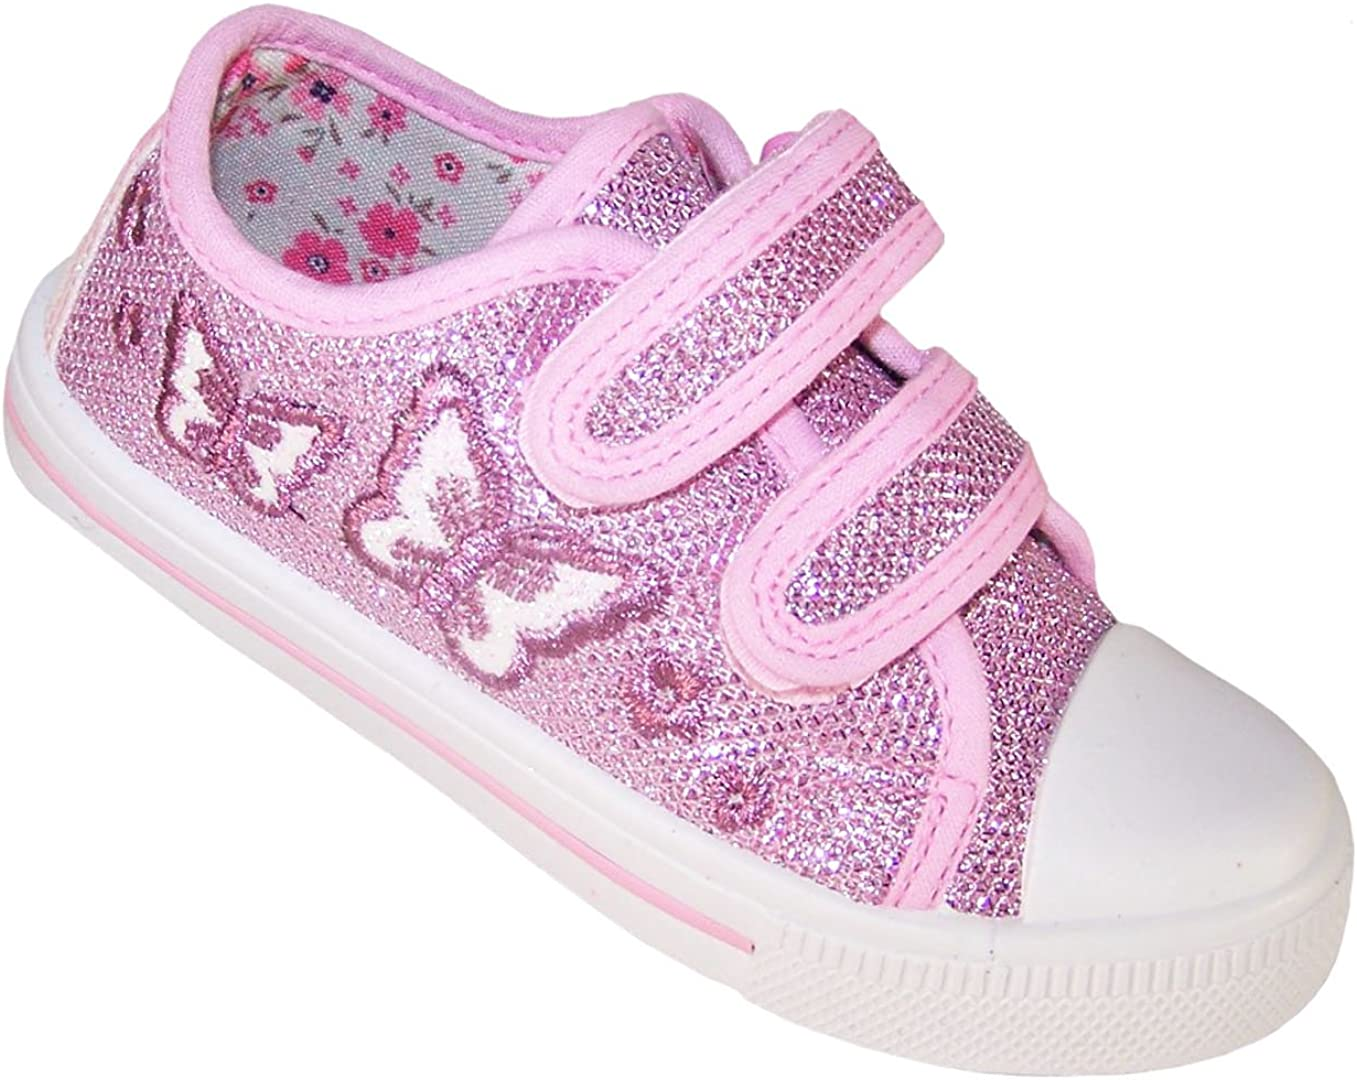 Pink Sparkly Glitter Butterfly Trainers